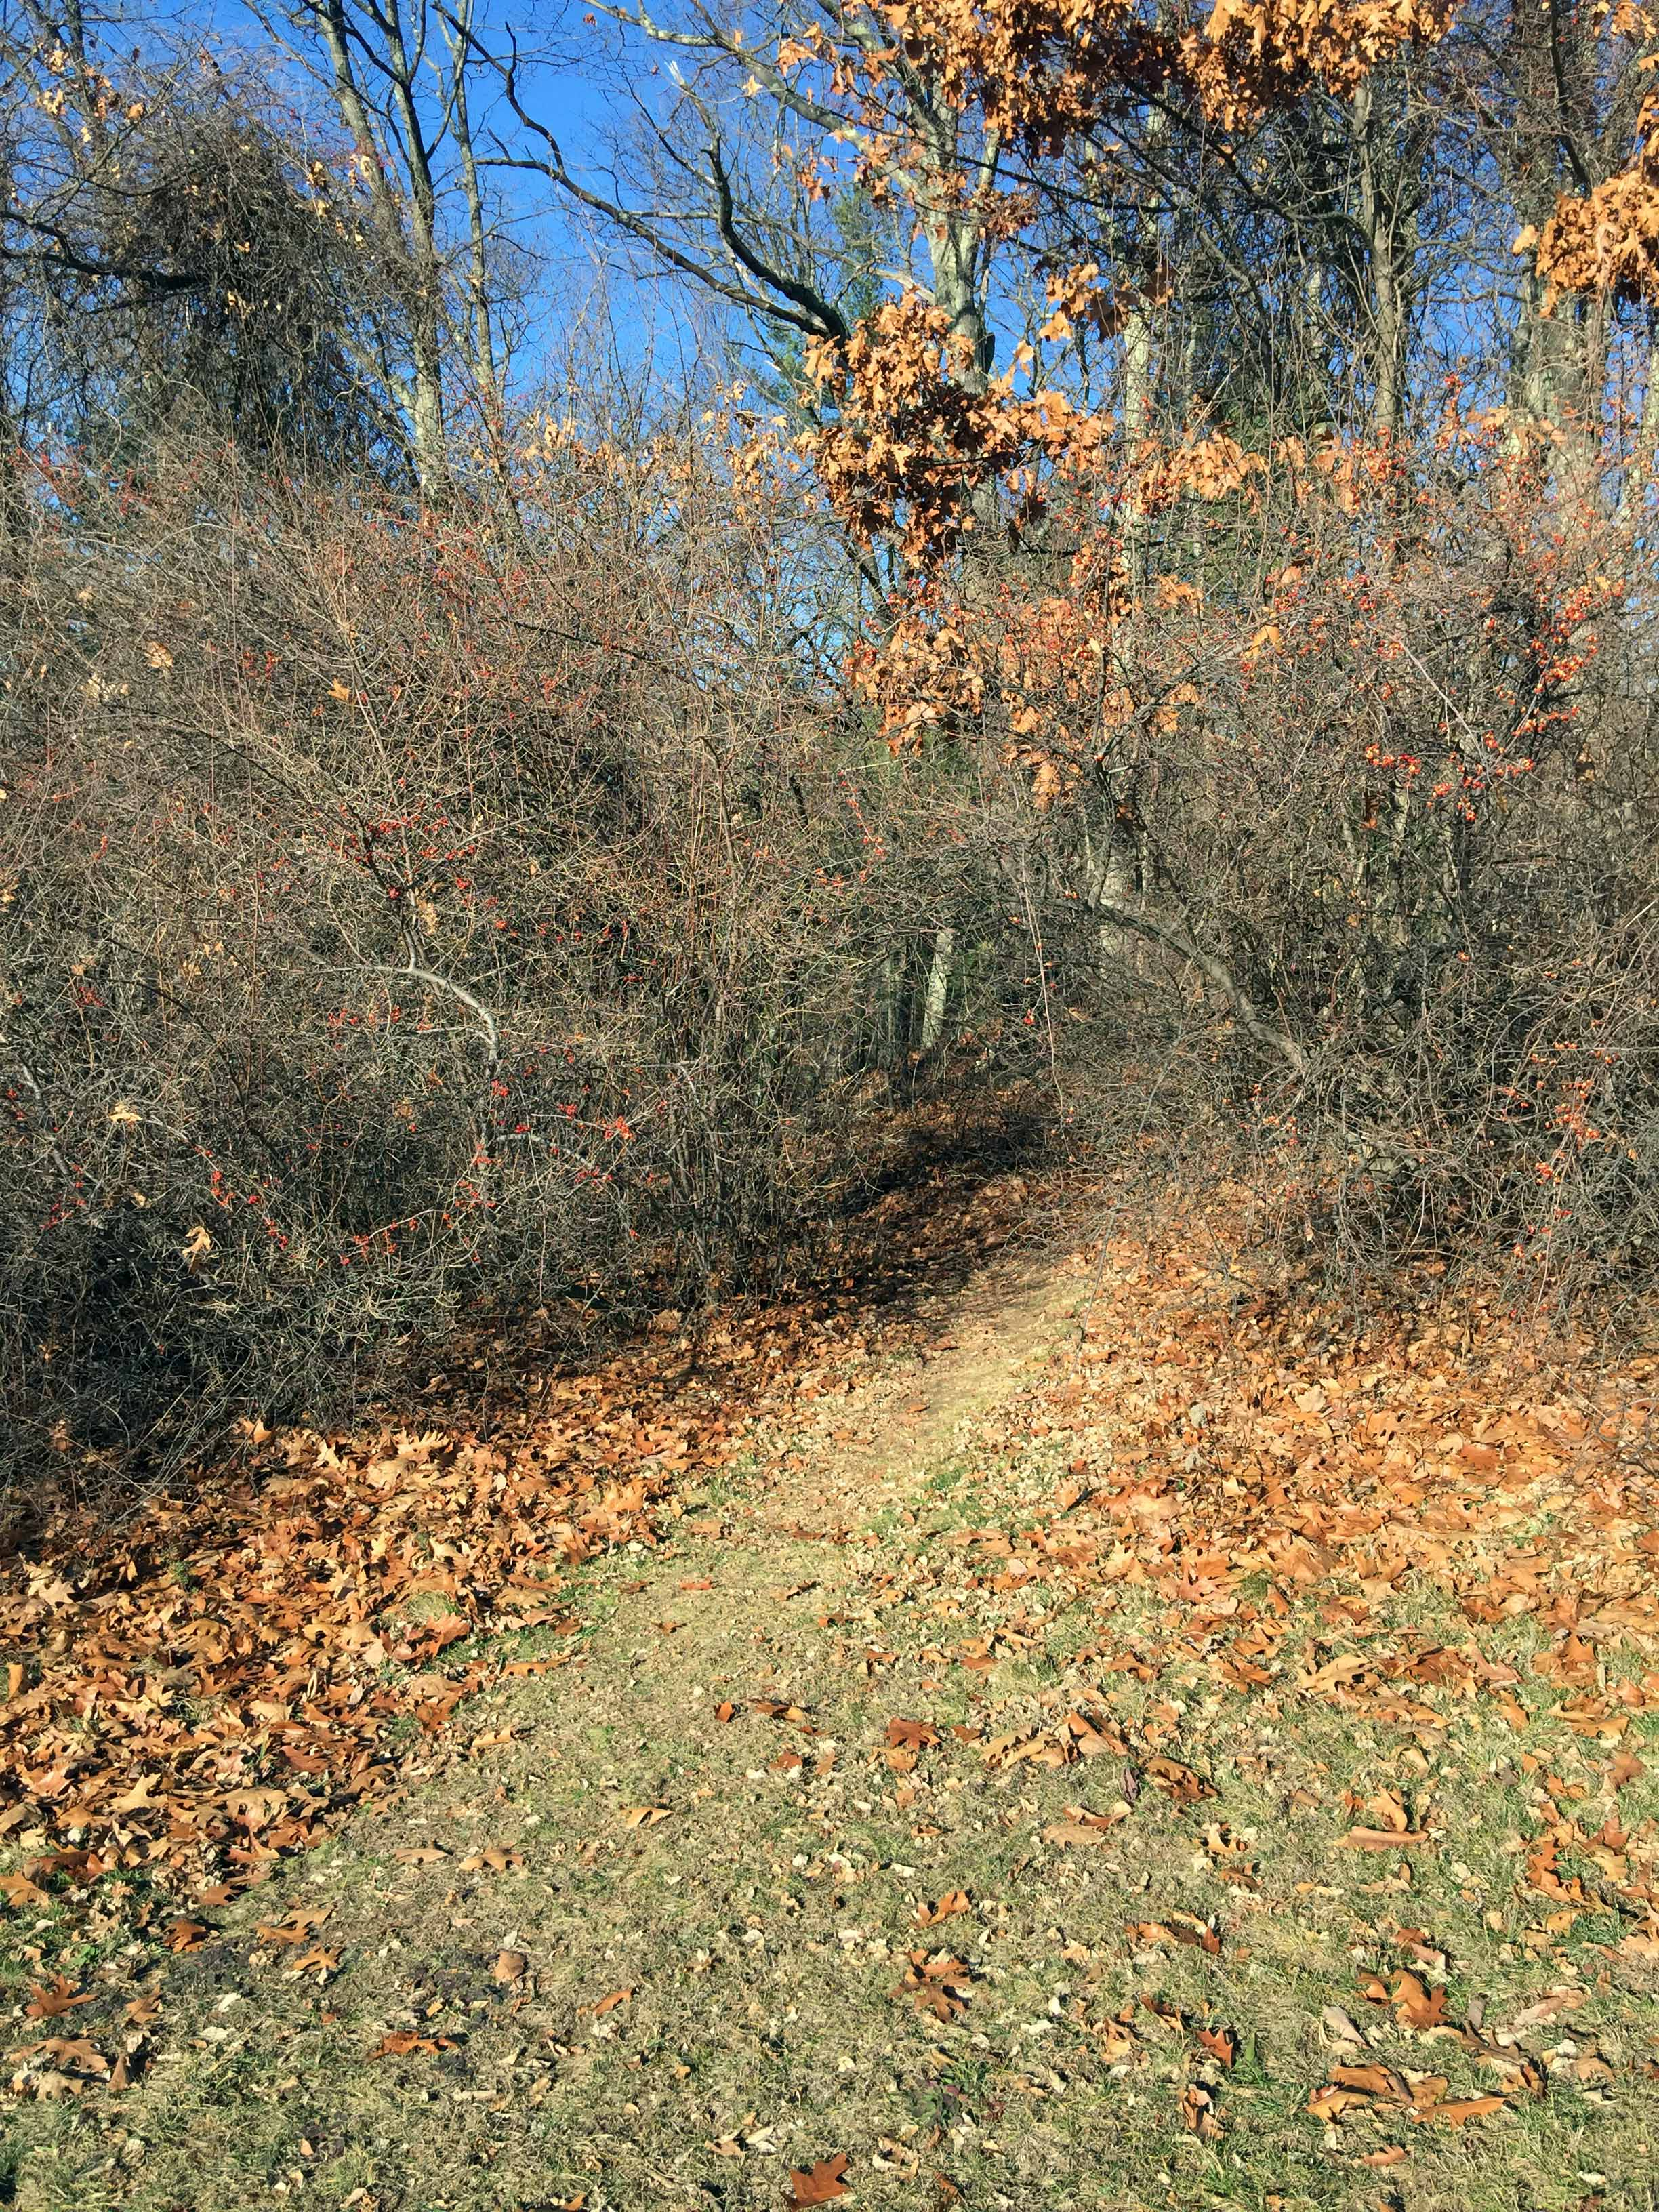 Cobb Trail entrance at northwest corner of open field